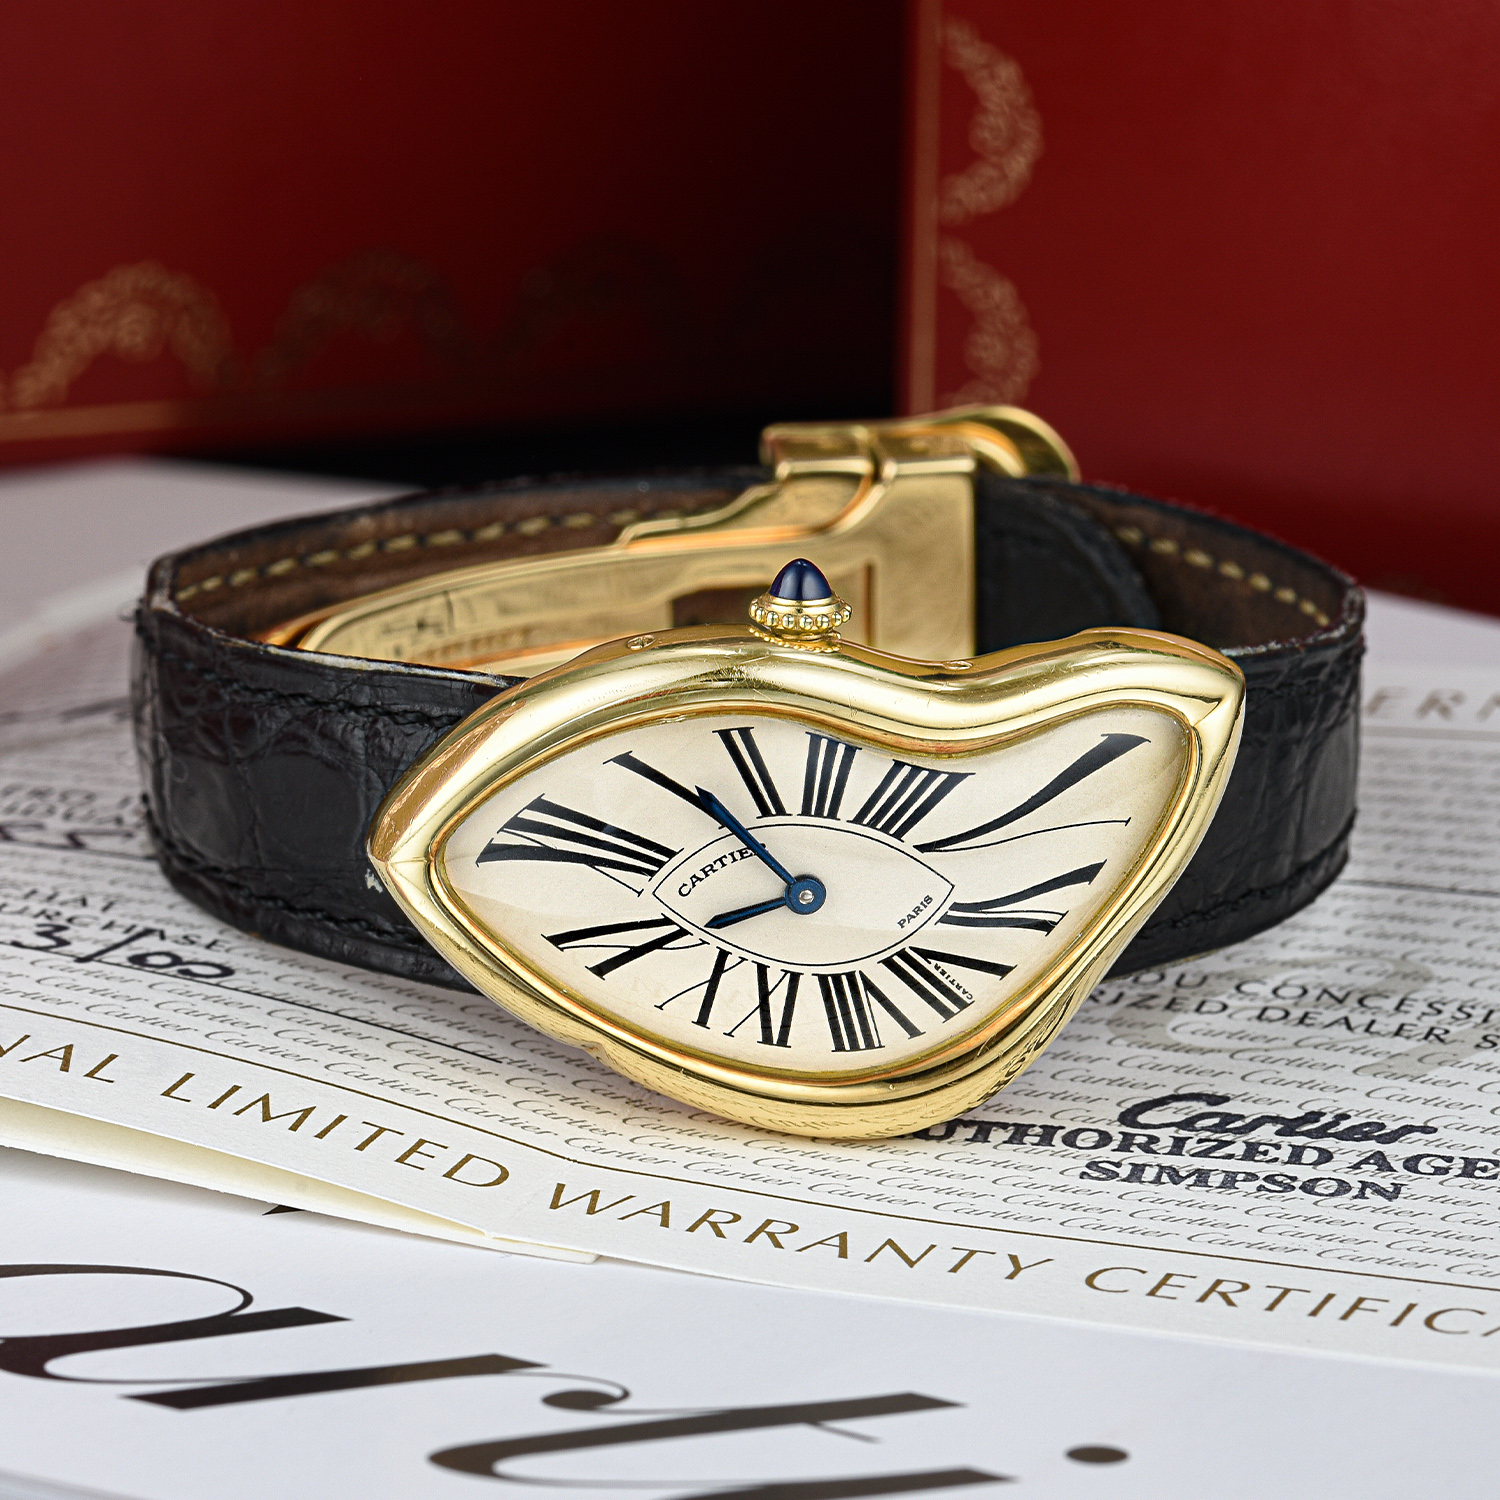 Cartier Crash 1991 Limited Edition - Fortuna December 2019 Important Watches